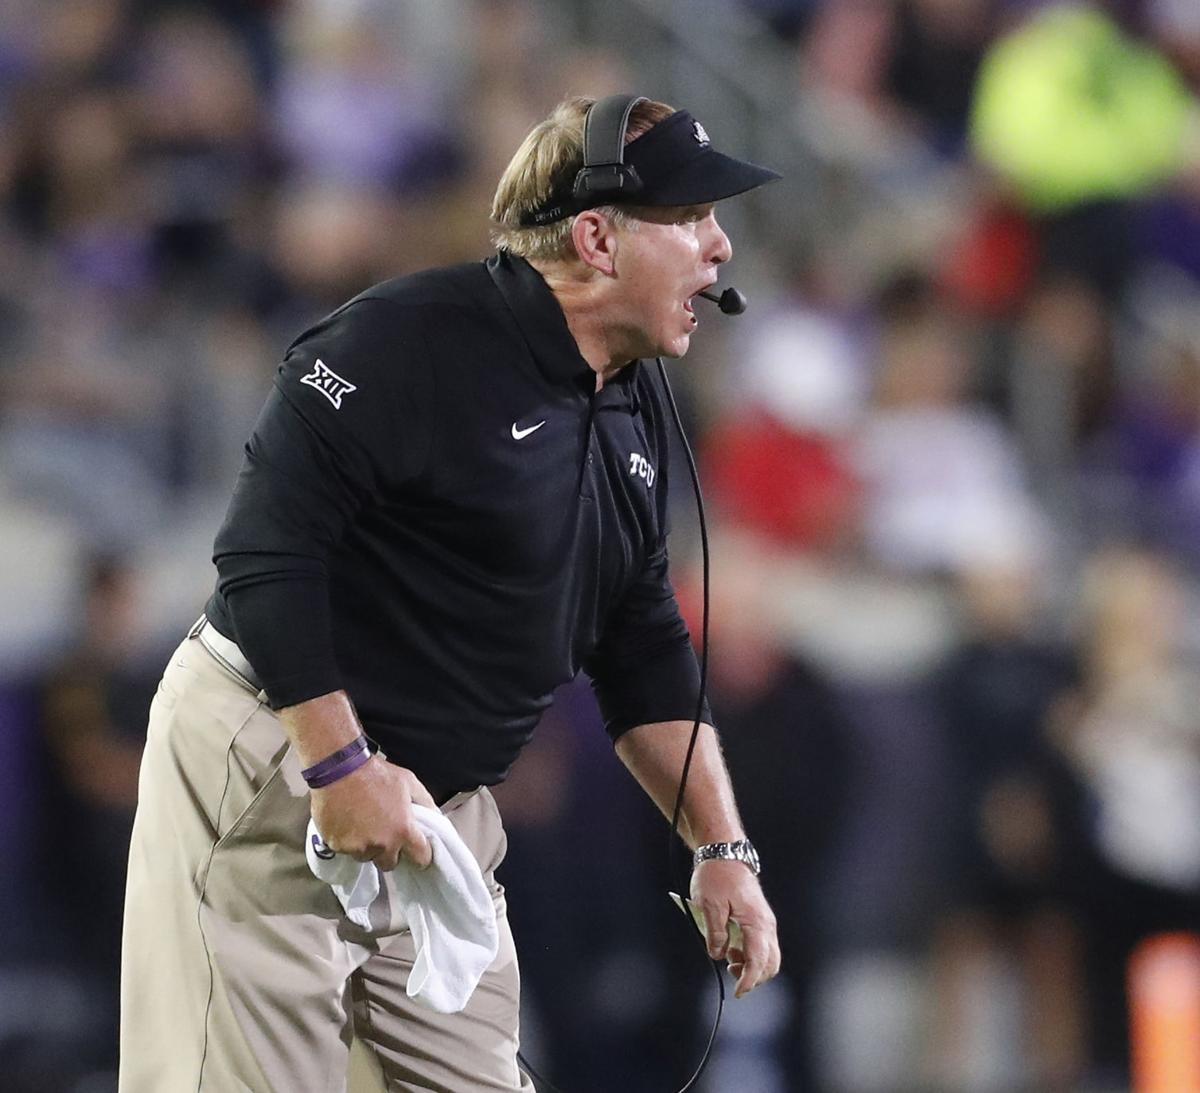 On October 11, 2018, TCU head coach Gary Patterson shouts in directions in the first half against Texas Tech at Amon Carter Stadium in Fort Worth, Texas. The Horned Frogs struggled on Saturday, Oct. 20, 2018, in a 52-27 home loss against Oklahoma.